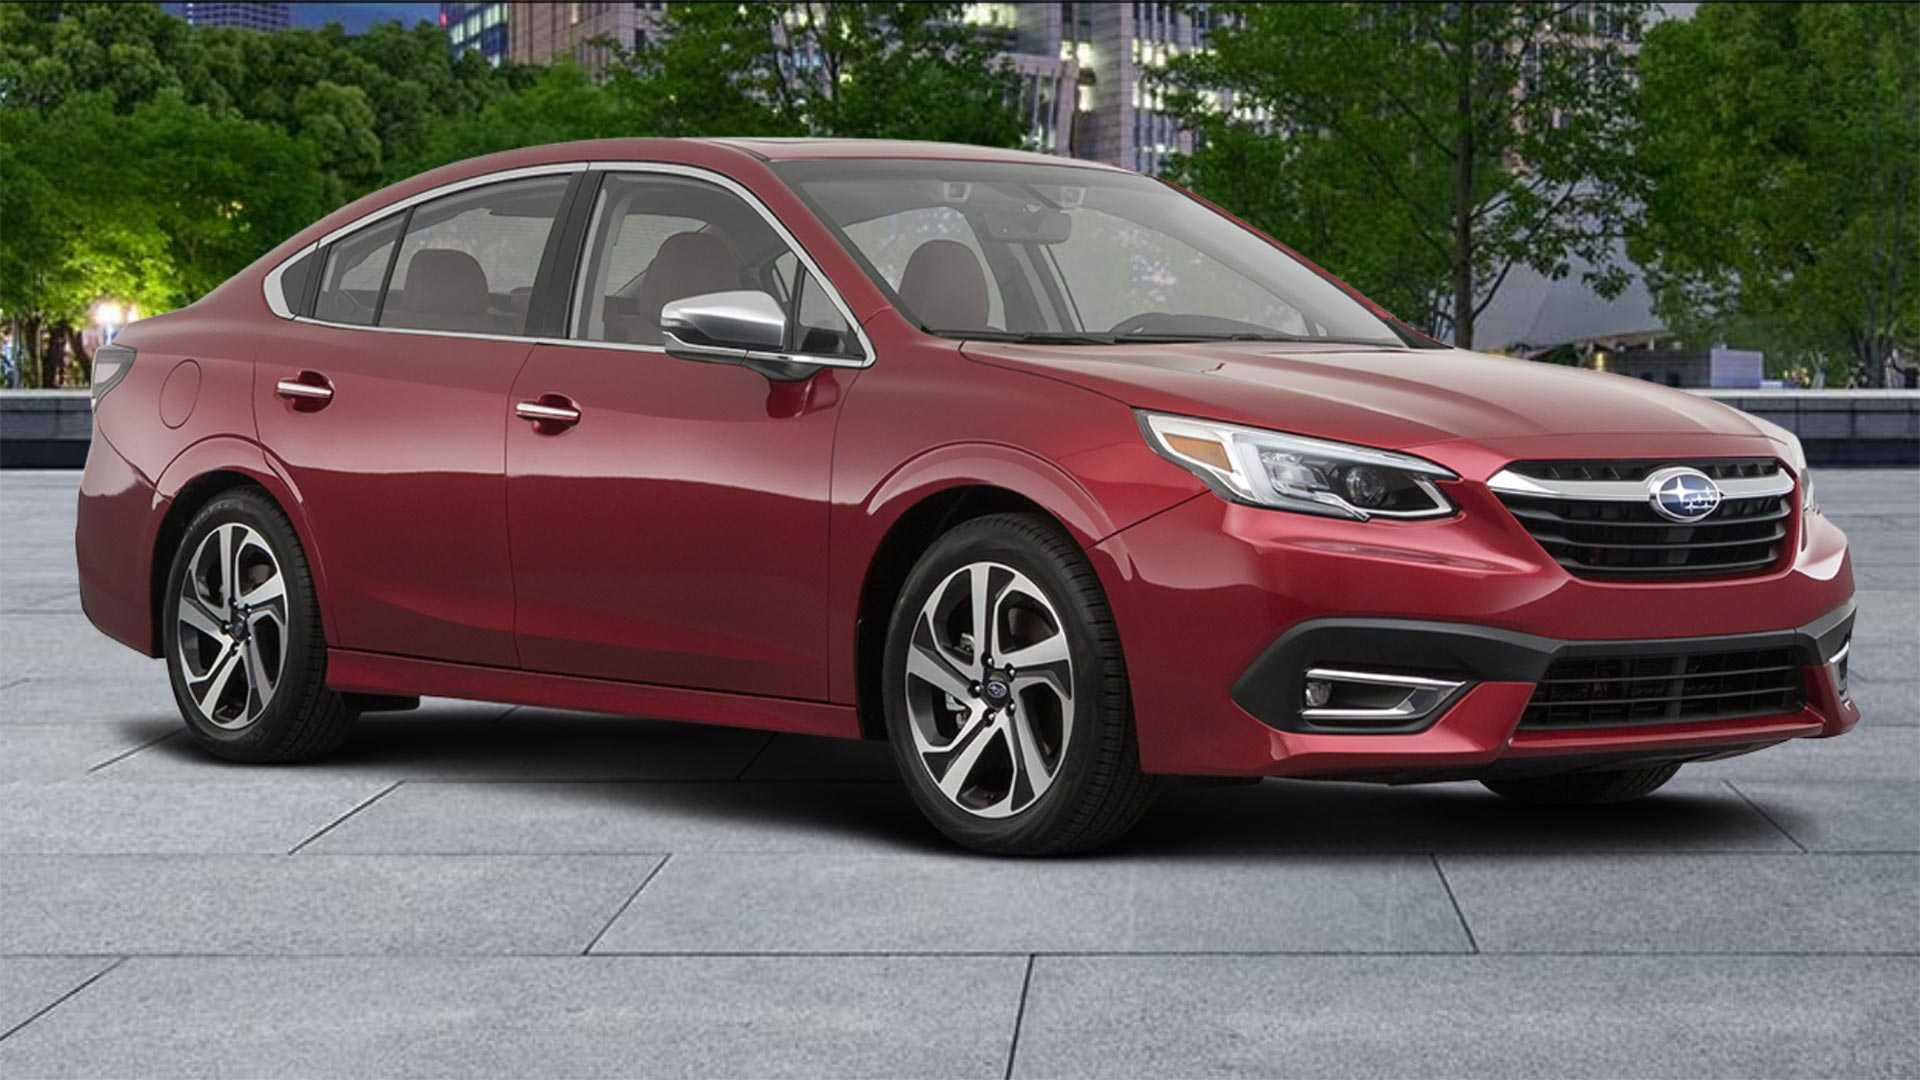 Most Expensive 2020 Subaru Legacy Costs $40,948